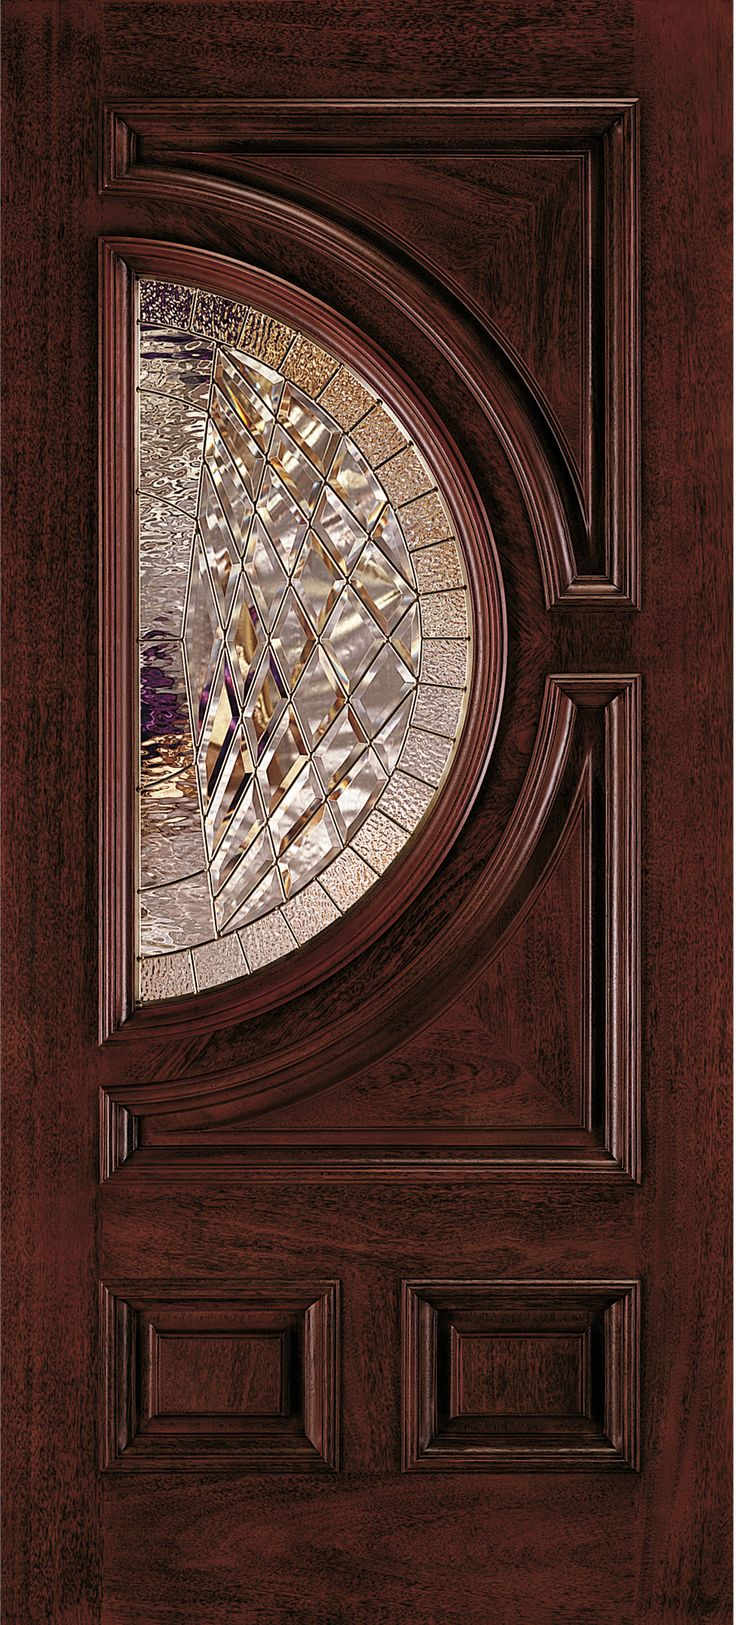 Aurora® Custom Fiberglass Glass Panel Exterior Door | JELD-WEN Doors & Windows